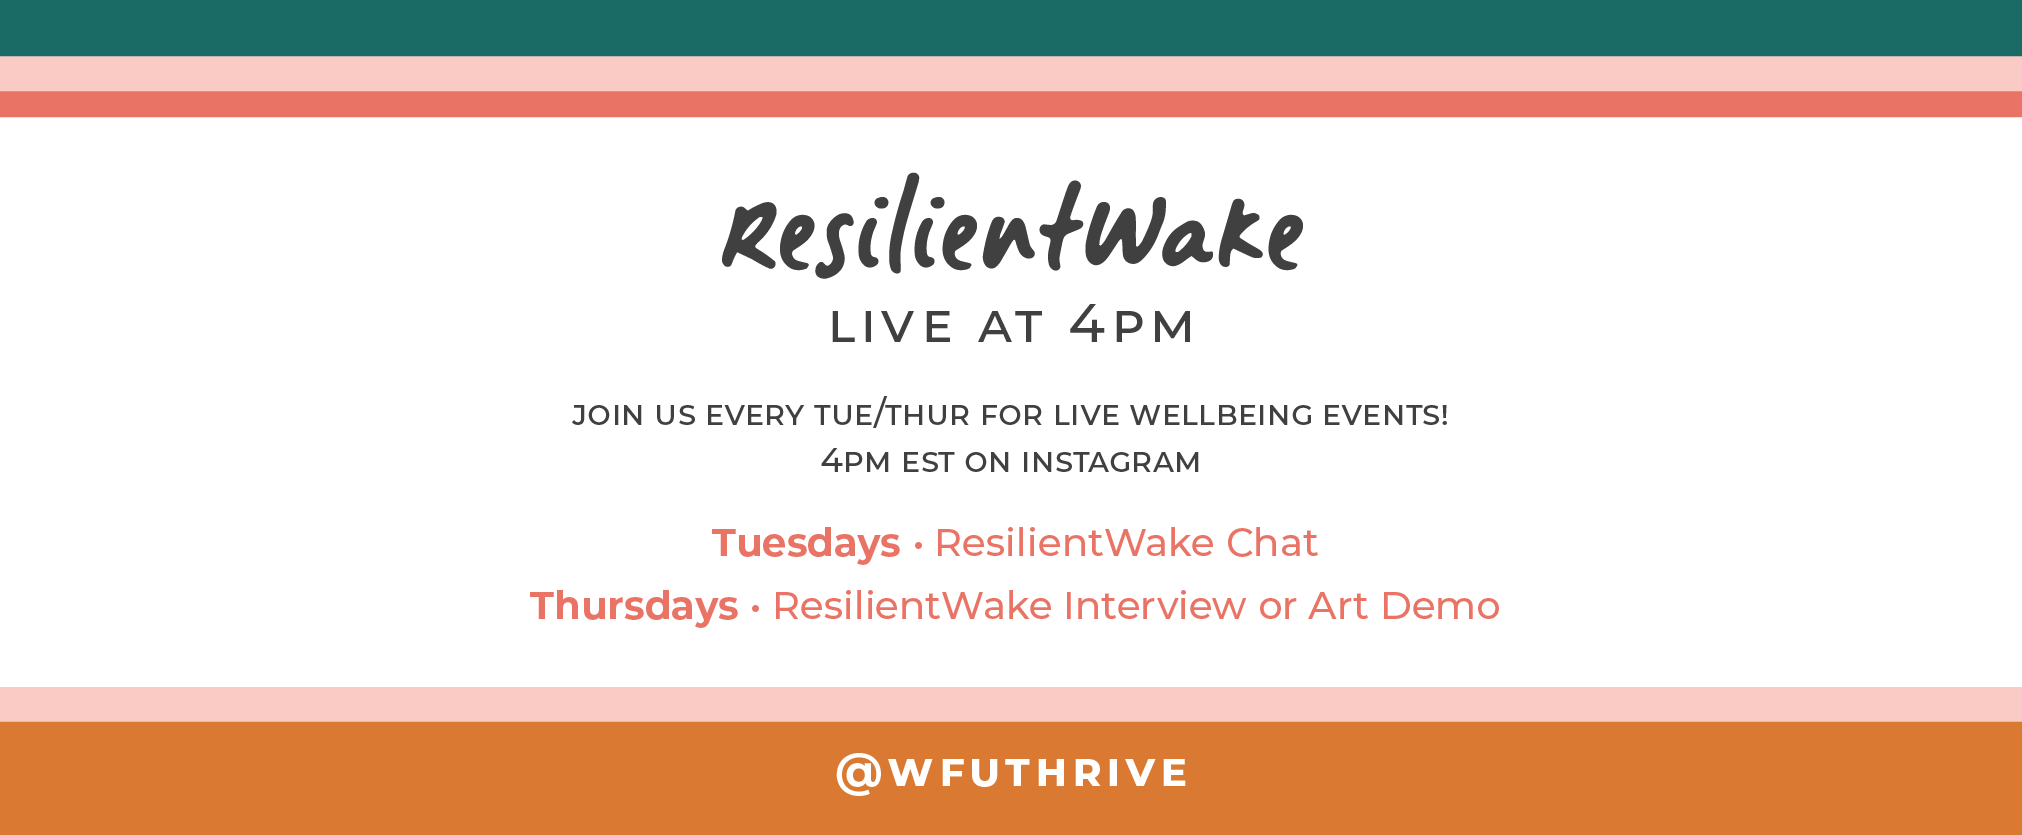 Join us live on Instagram every tuesday/thursday at 4pm EST @wfuthive